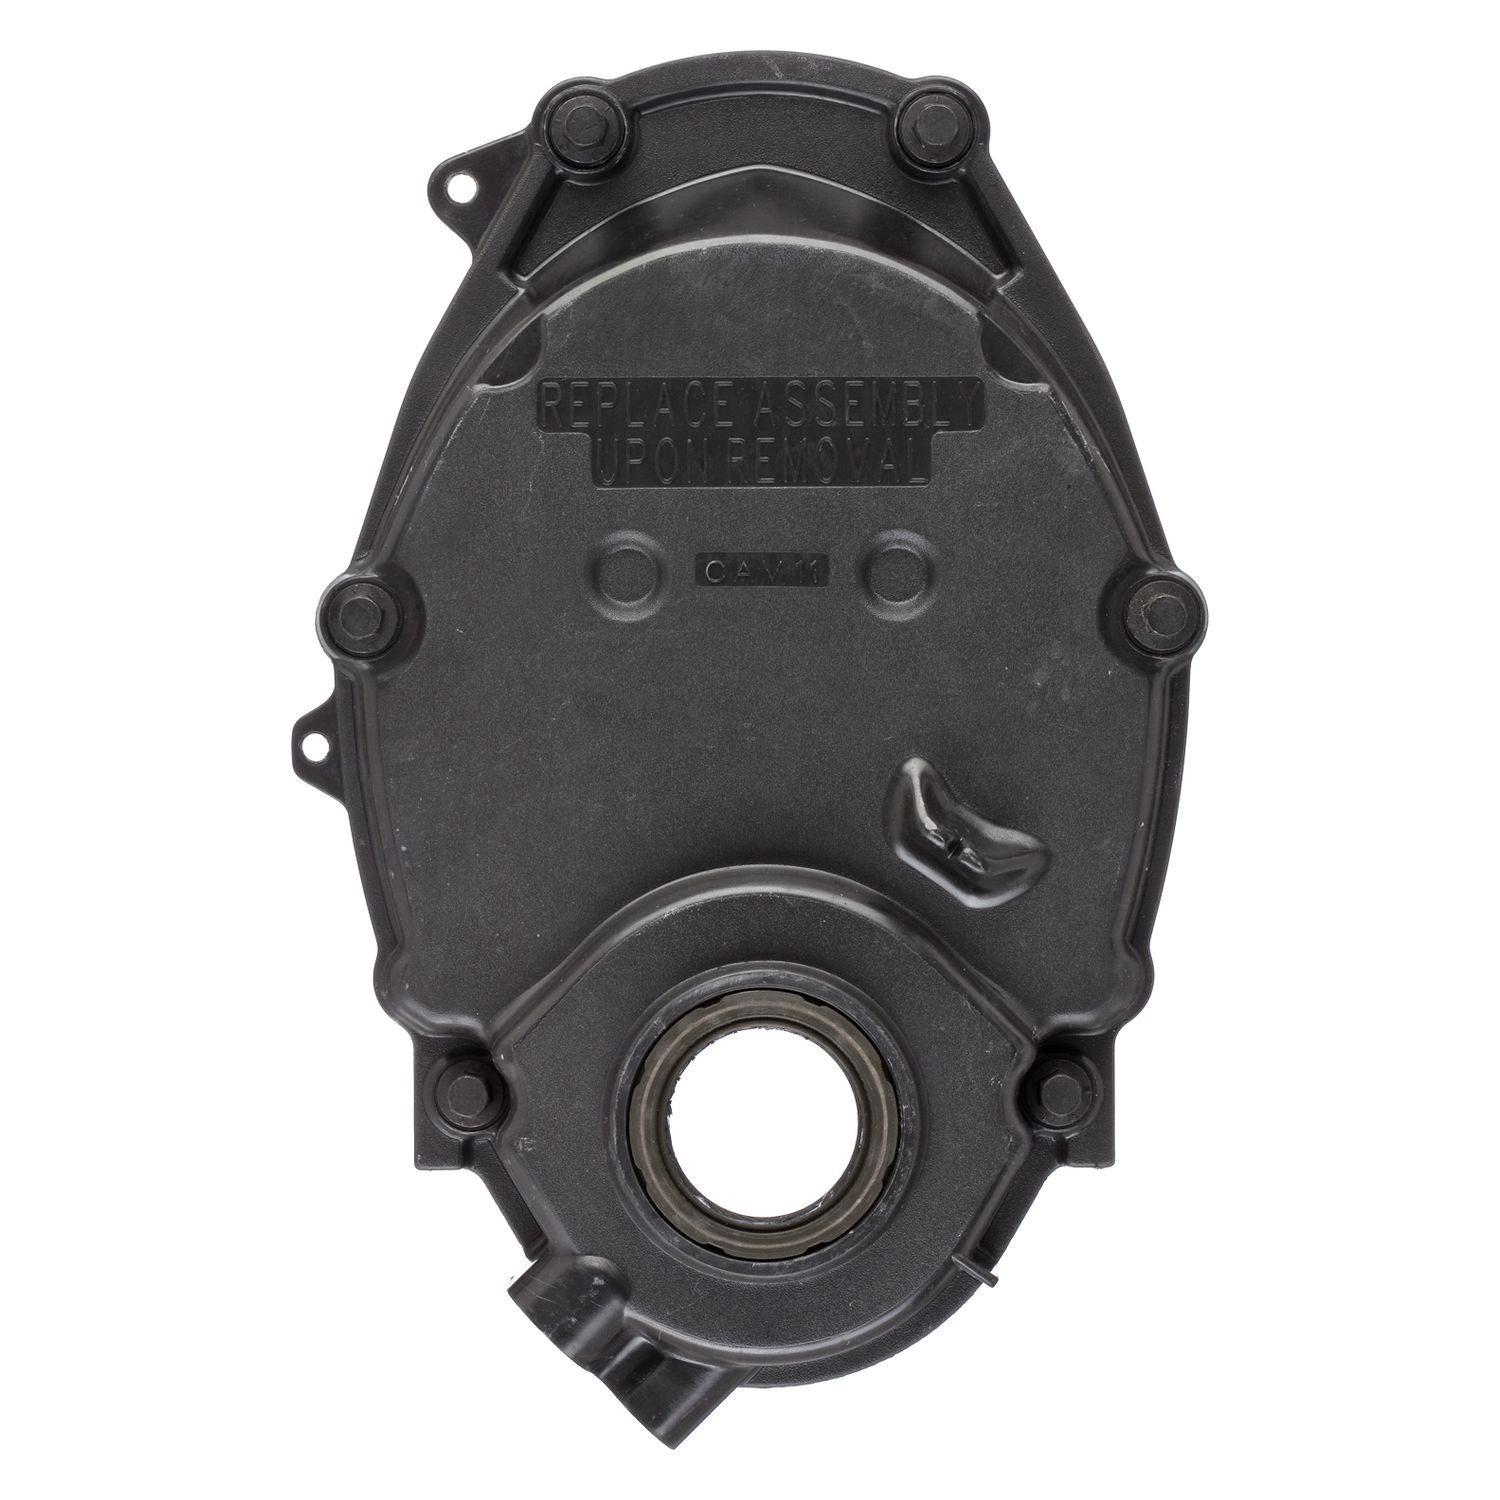 Chevy CK Pickup 1995 Tru-Time Adjustable Cam Gear